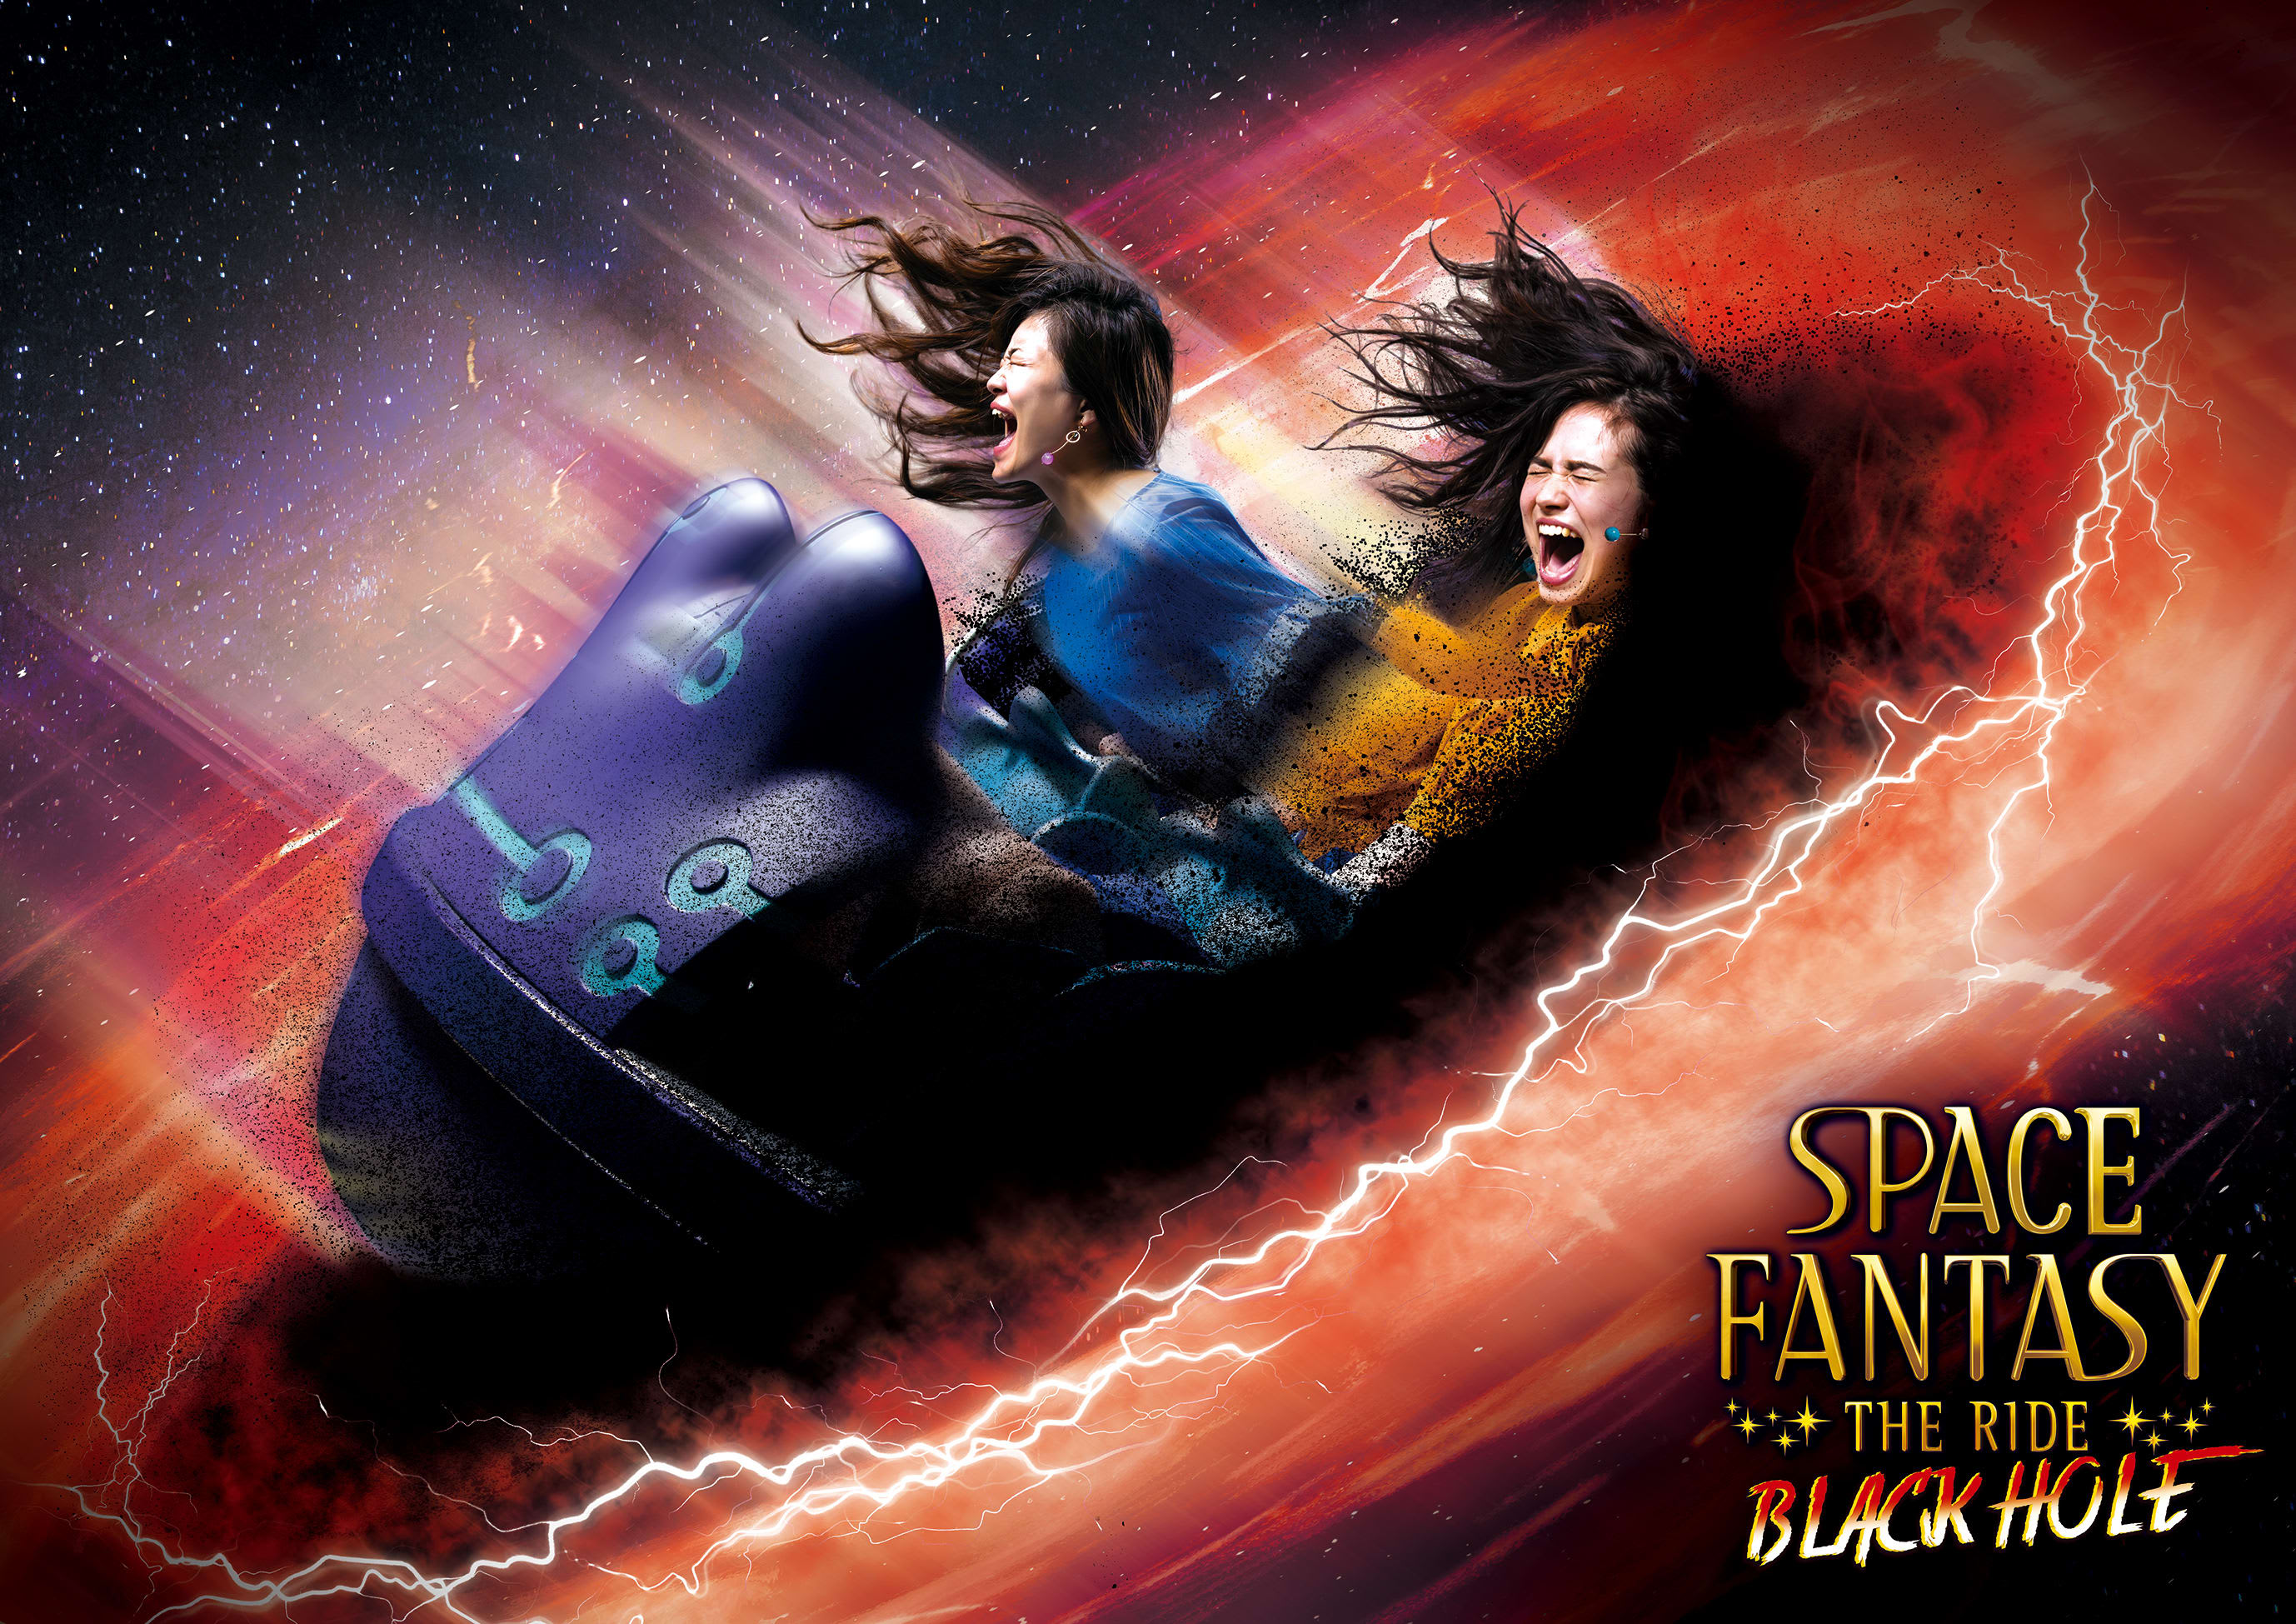 Space Fantasy - The Ride: Black Hole